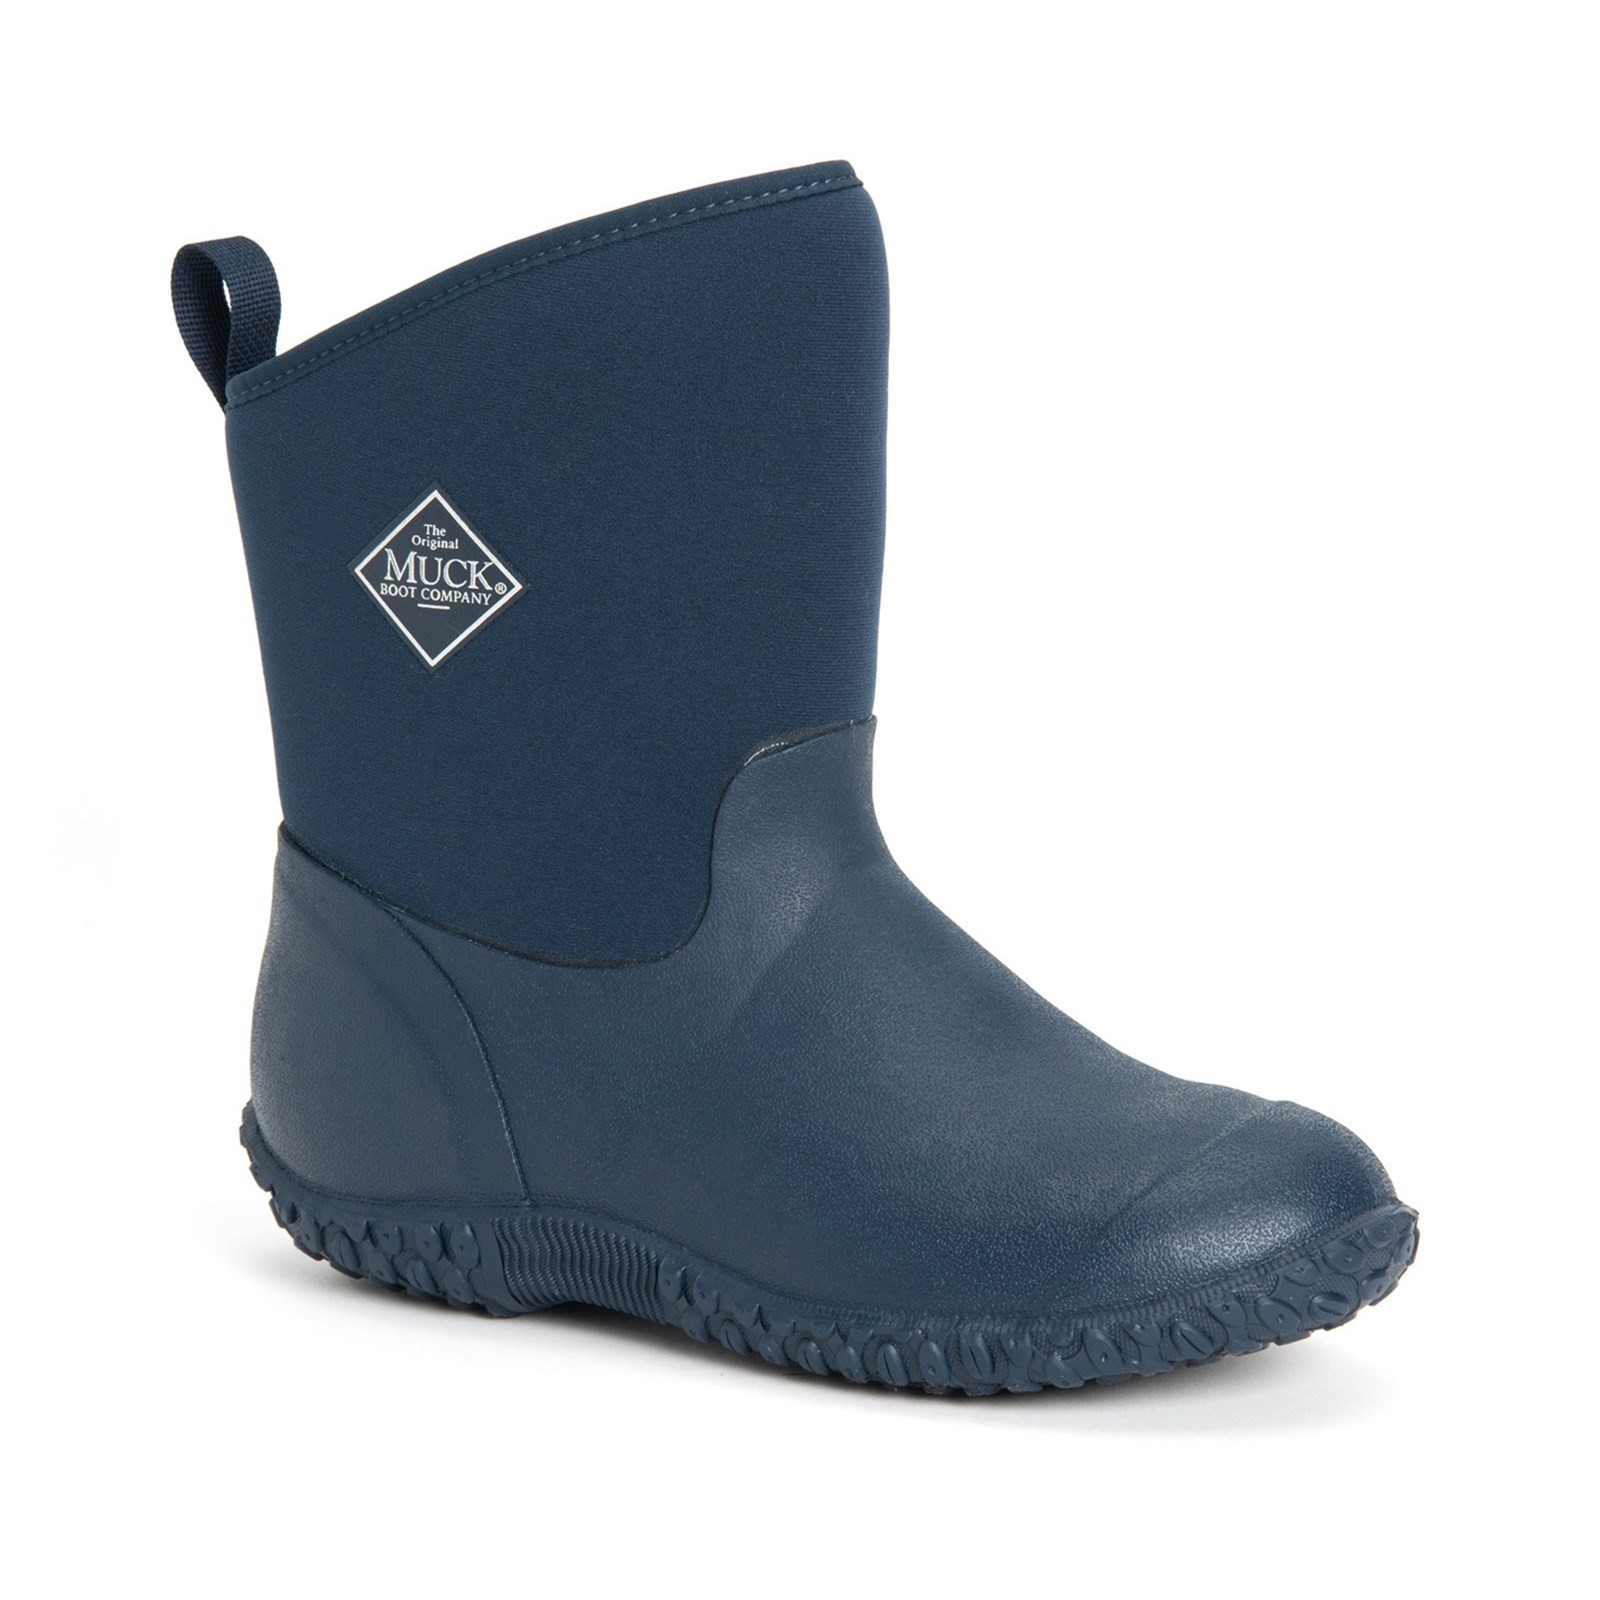 Muck Boot Muckster II Mid Shearling Size 6 UK